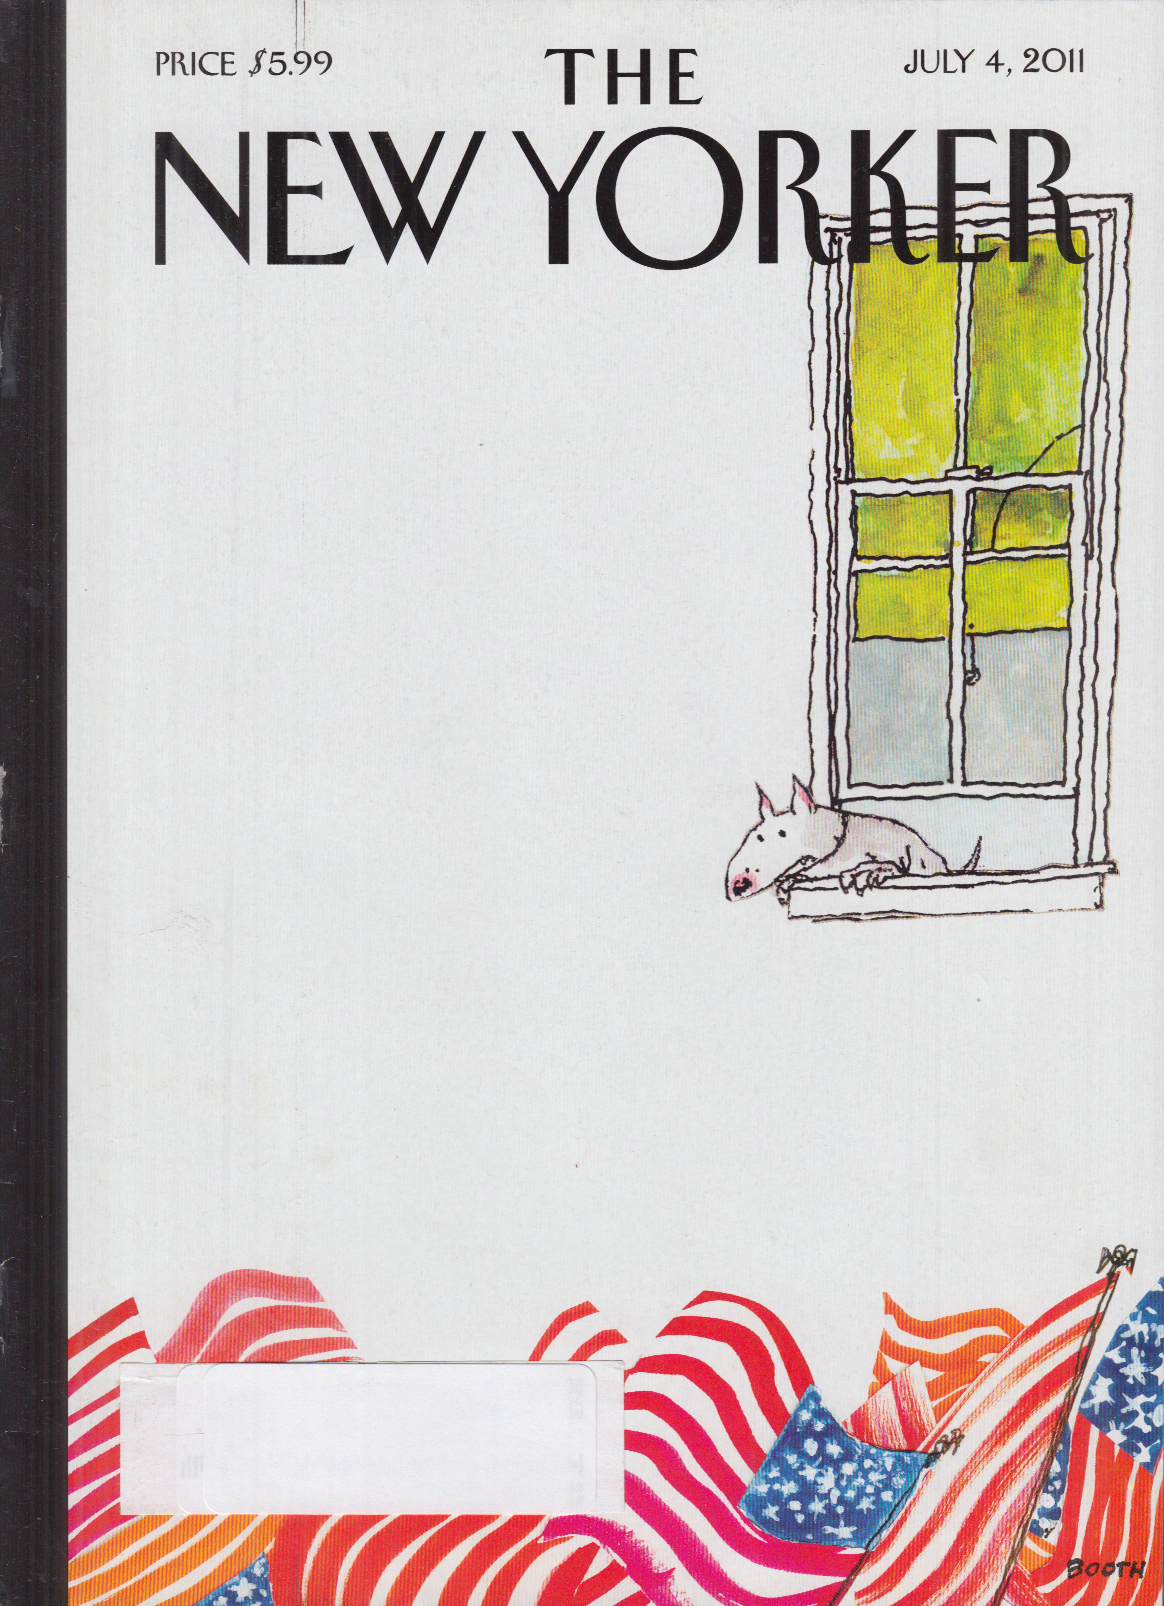 New Yorker cover Booth 7/4 2011 Bull terrier watches parade from window